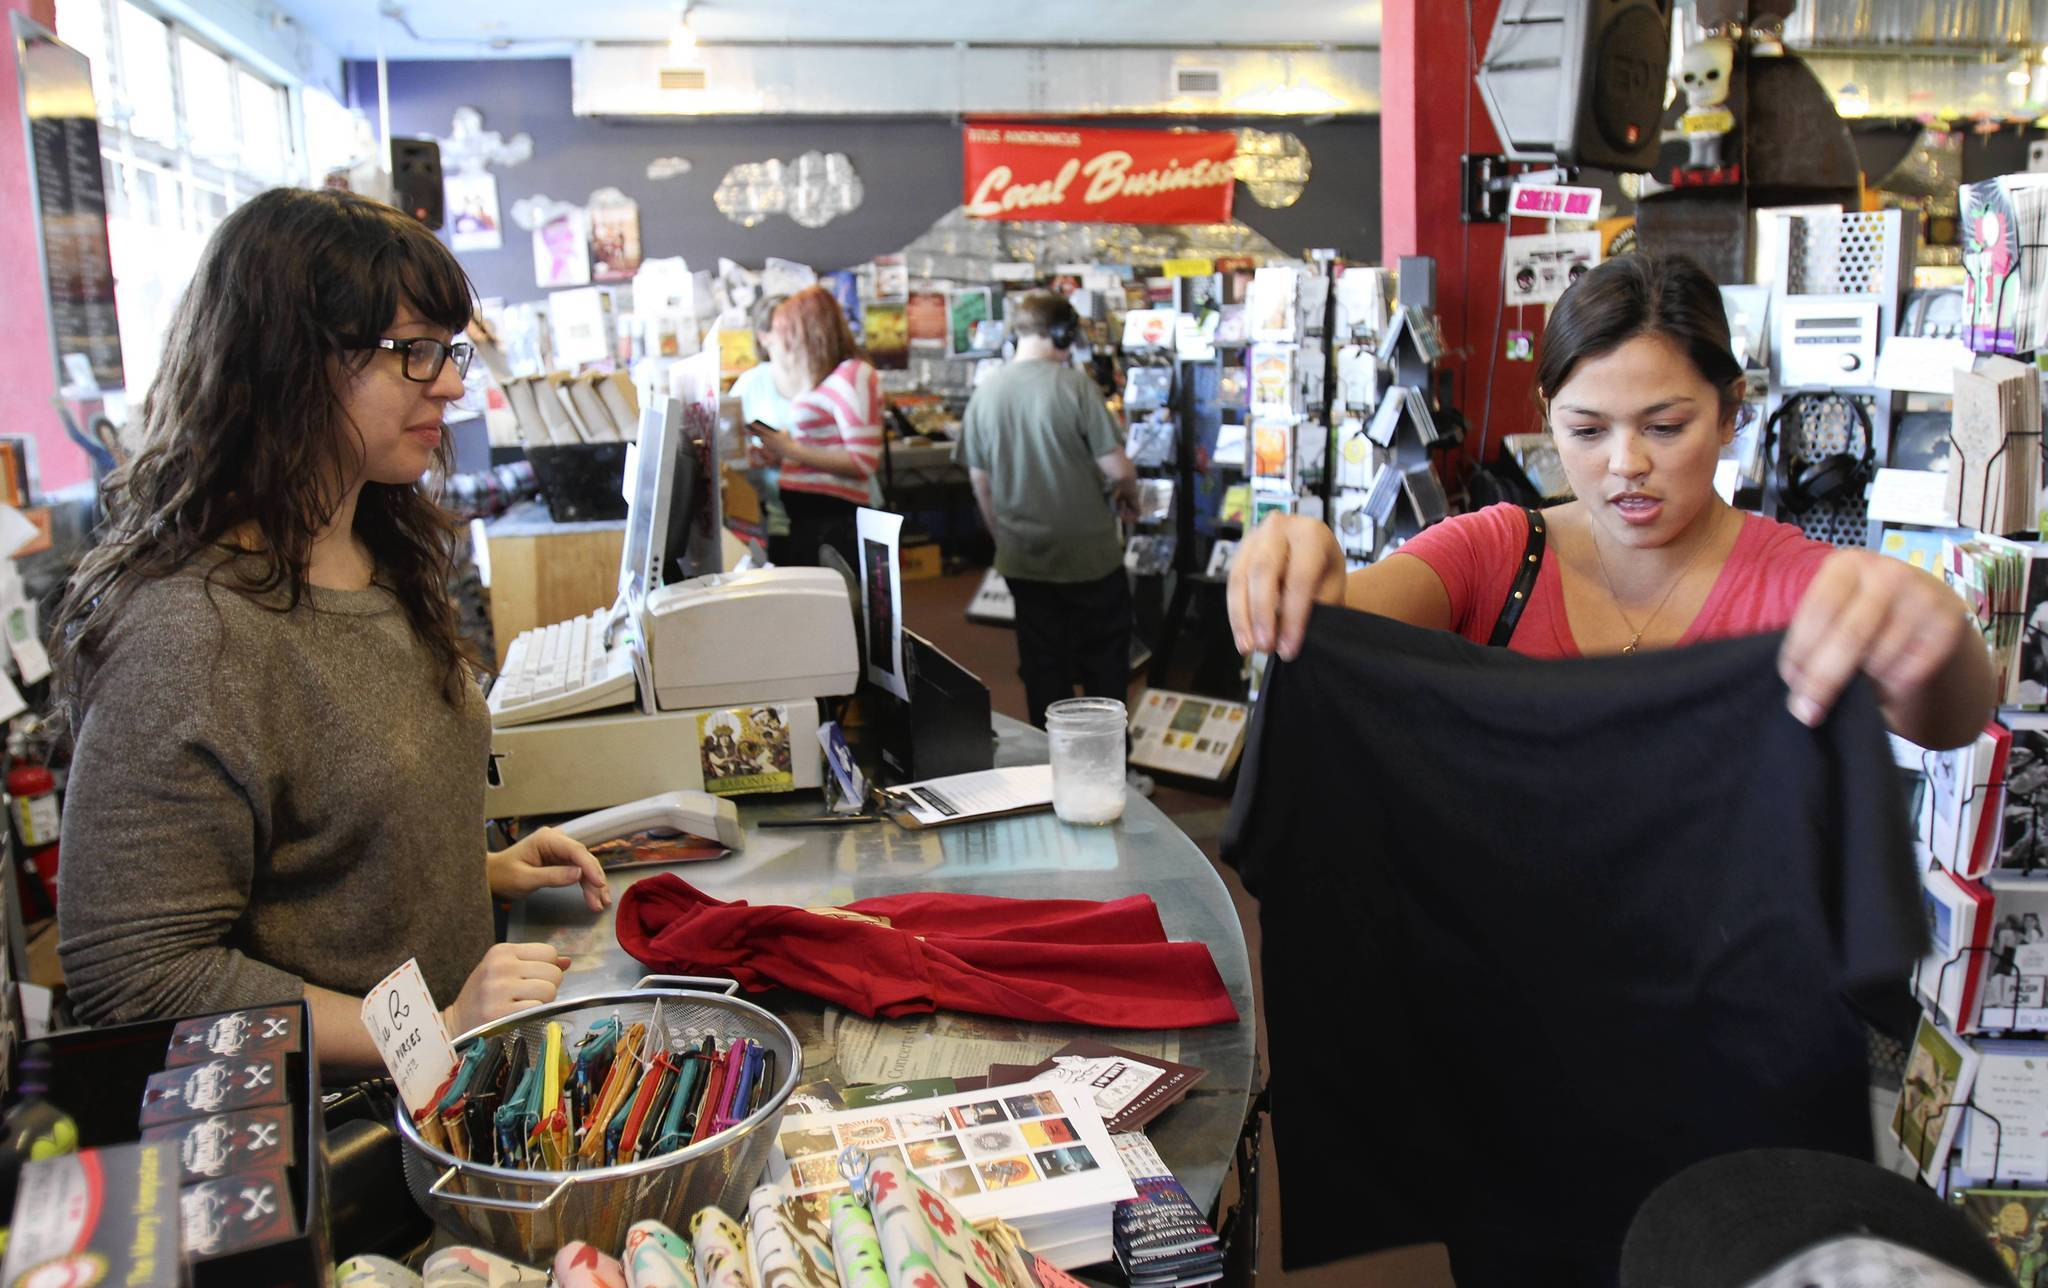 Heather Frechette, right, buys T-shirts from Tierney Tough at Park Avenue Compact Discs in Orlando's Audubon Park neighborhood Saturday.